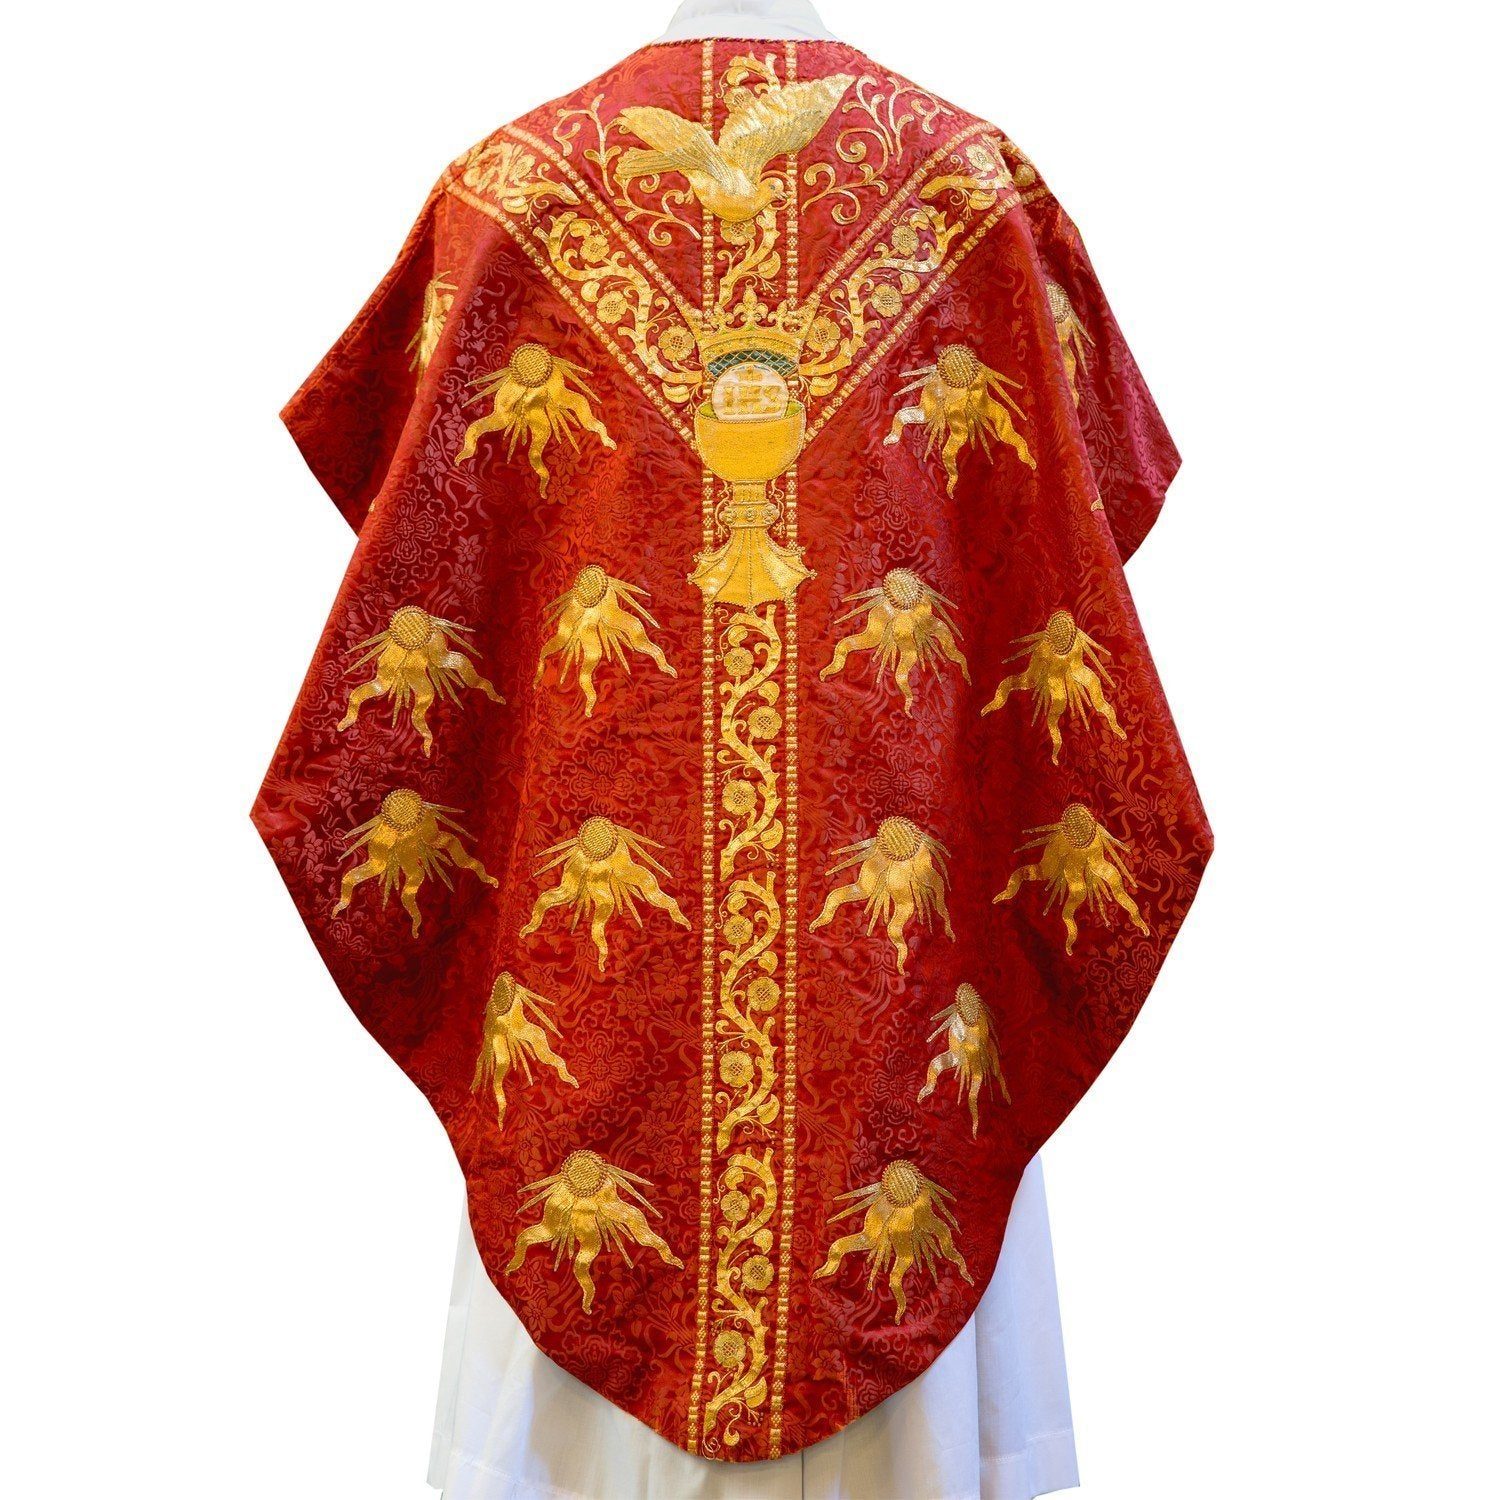 Historic Embroidered Chasuble in Red Japonica Silk - Watts & Co. (international)